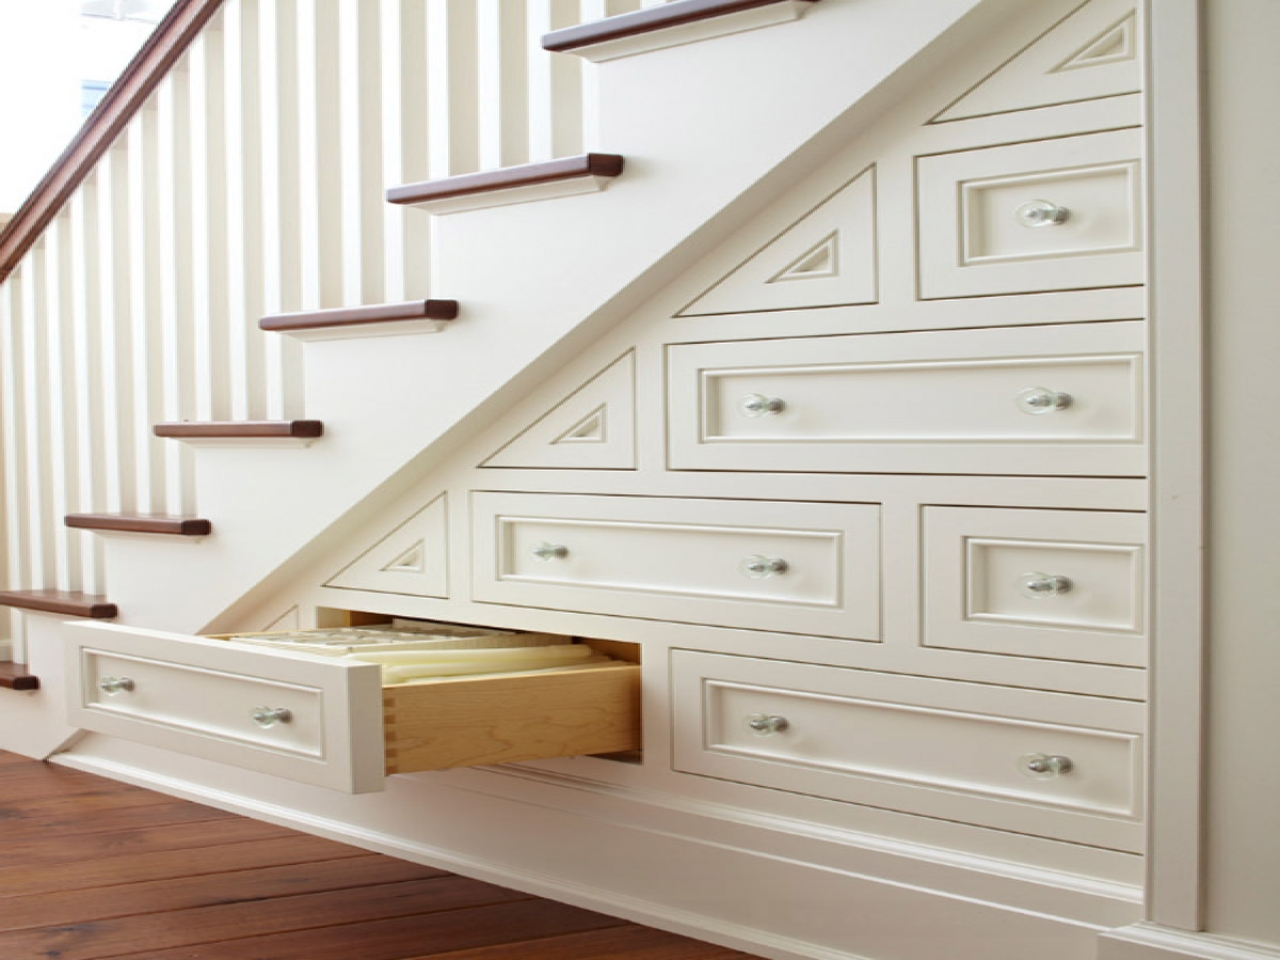 built in drawers & chests under stairs